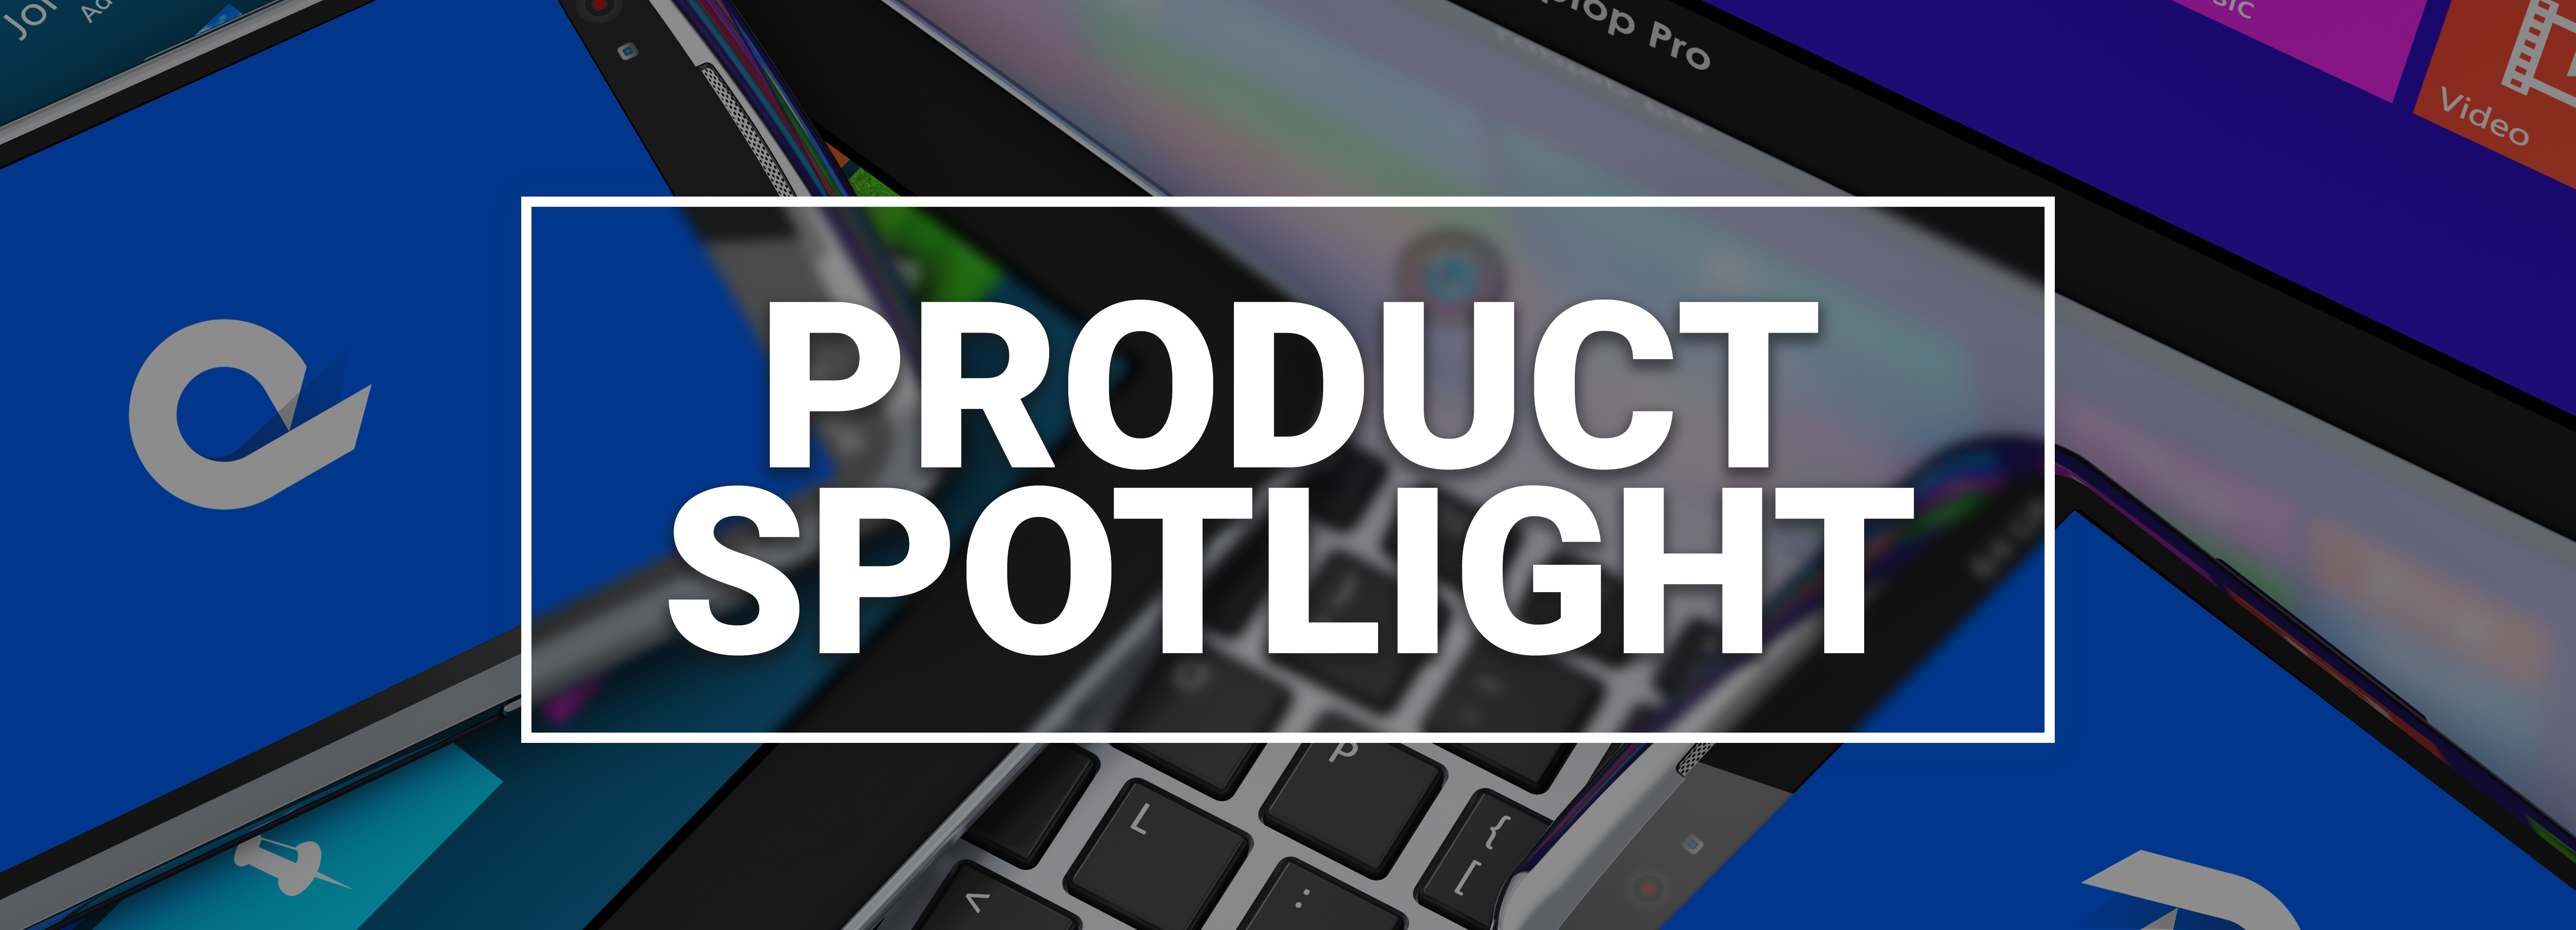 Device Magic product spotlight header